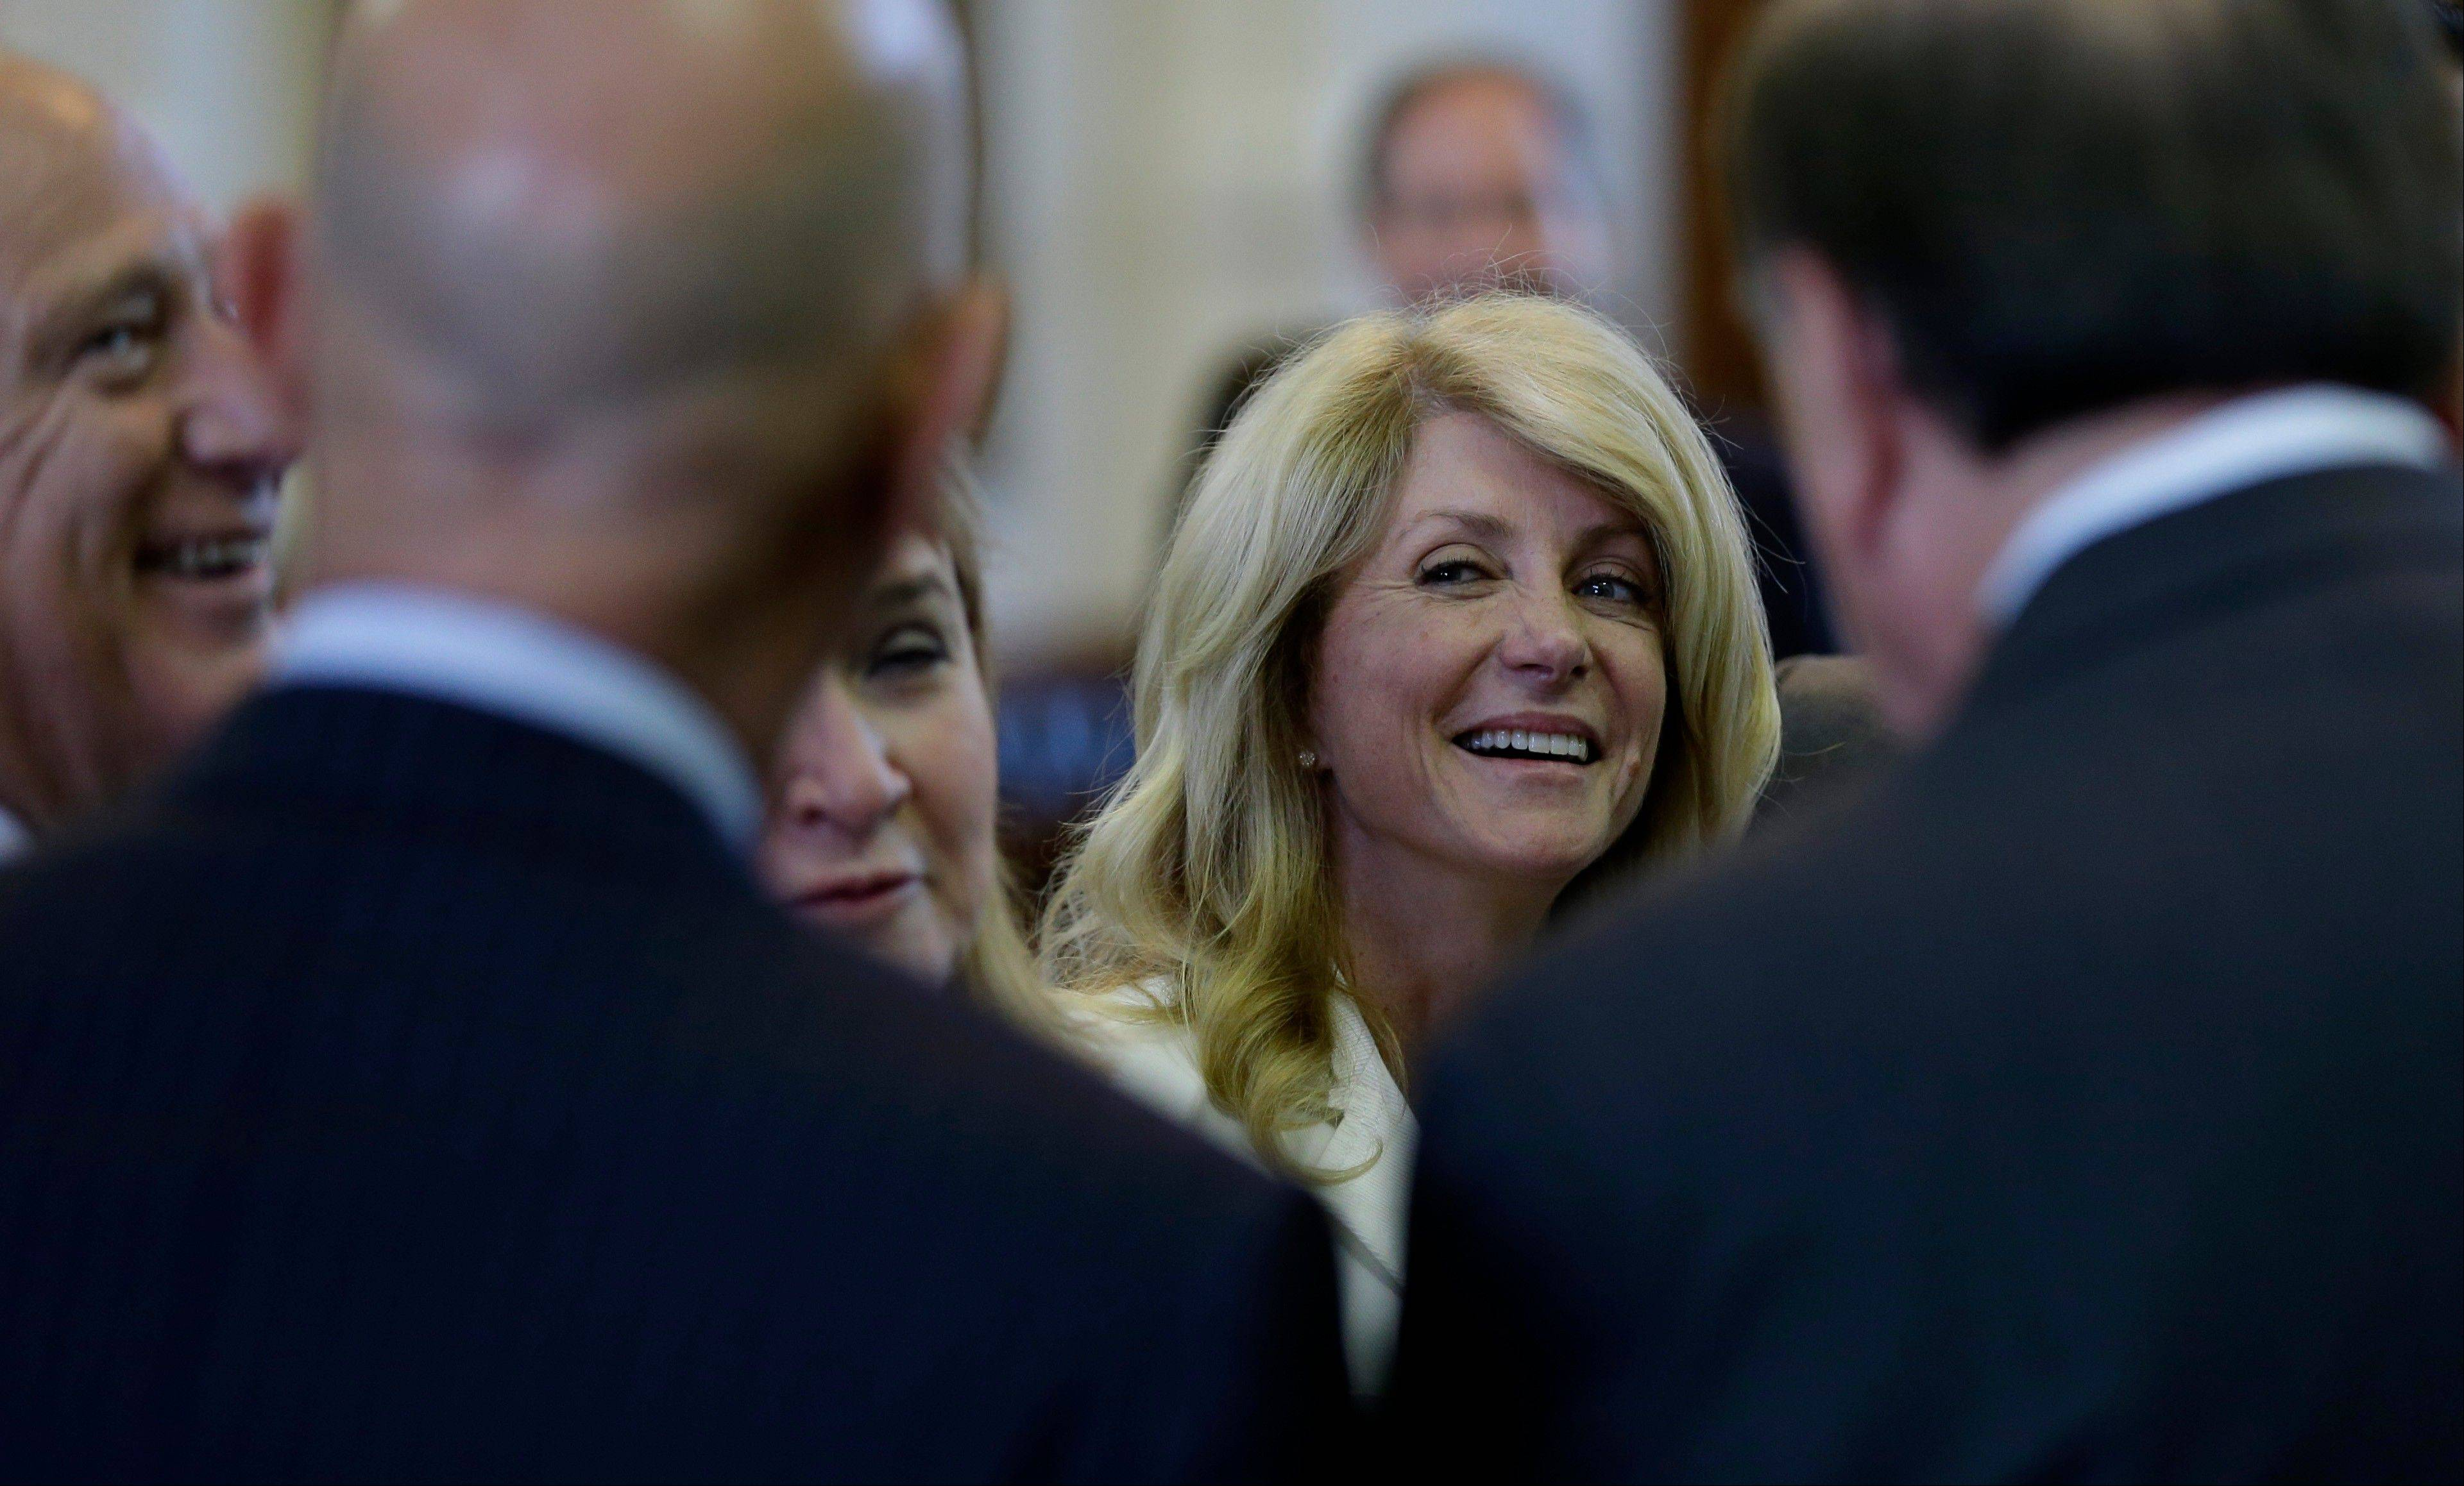 Sen. Wendy Davis, D-Fort Worth, center, talks with fellow senators during a recess, Monday, June 24, 2013, in Austin, Texas. Senate democrats are trying to hold off on a bill that would ban abortion after 20 weeks of pregnancy and force many clinics that perform the procedure to upgrade their facilities and be classified as ambulatory surgical centers.